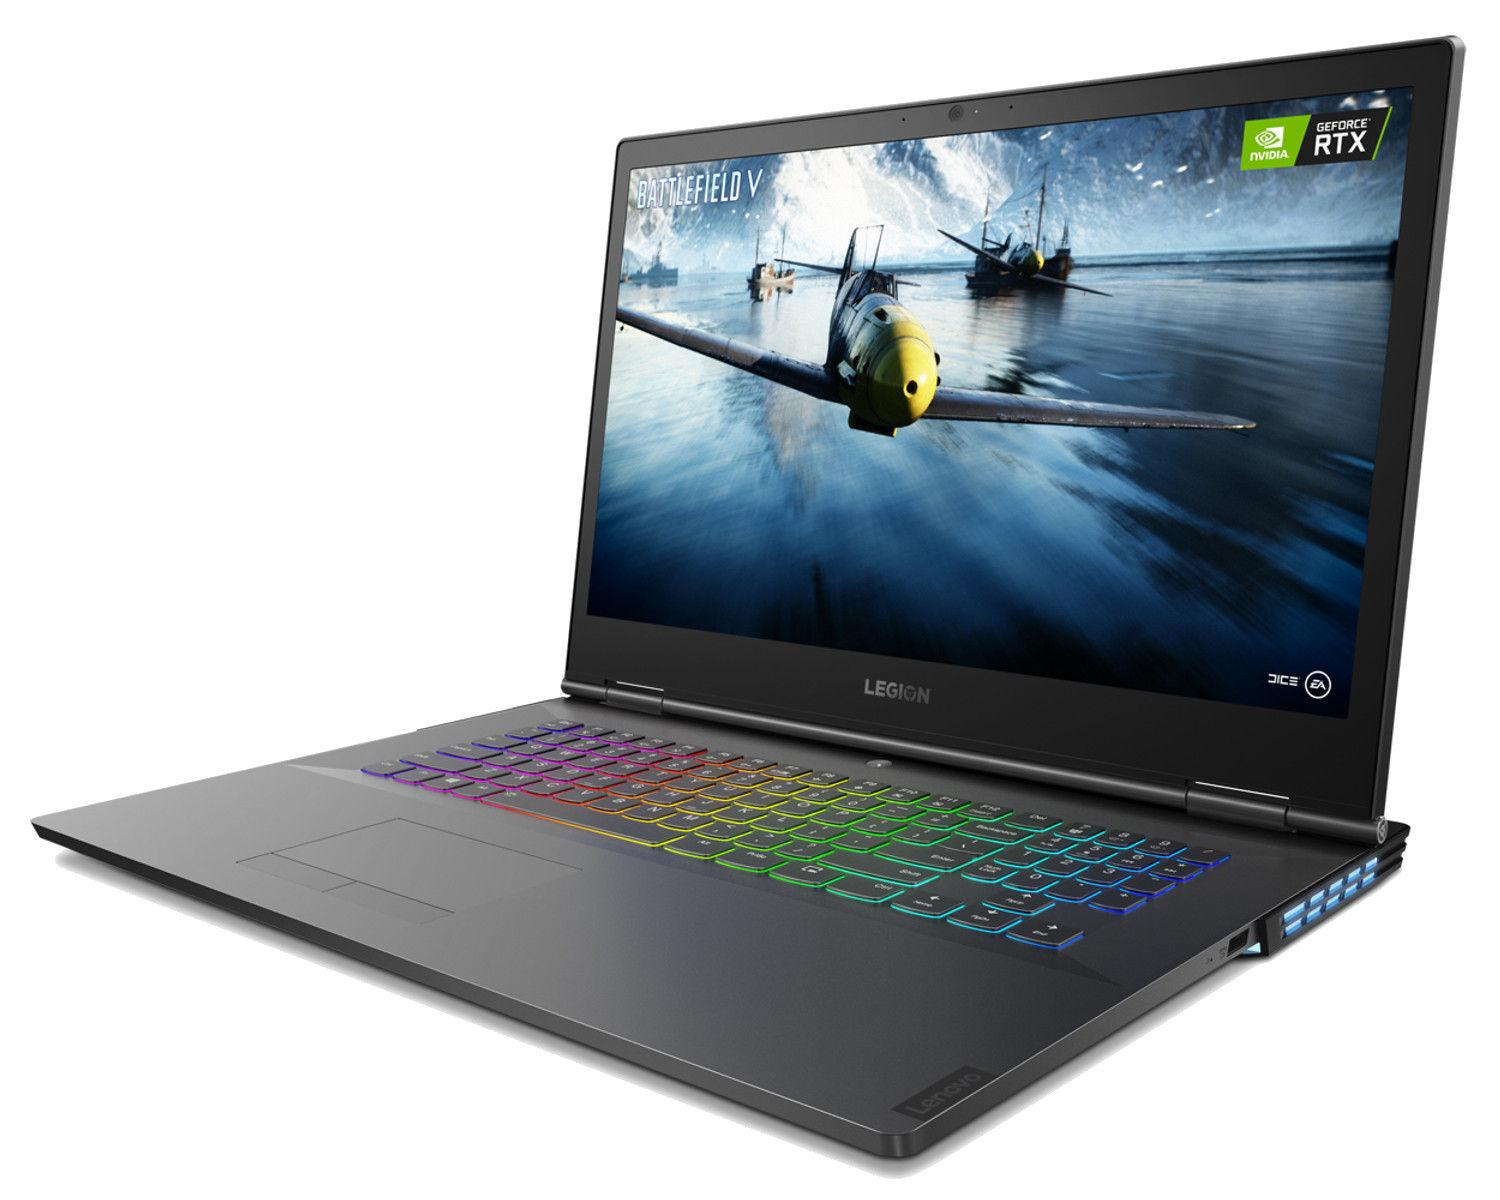 Ordinateur portable Lenovo Legion Y740-17ICH (81HH0014FR) - RTX 2080, IPS 144Hz - photo 6